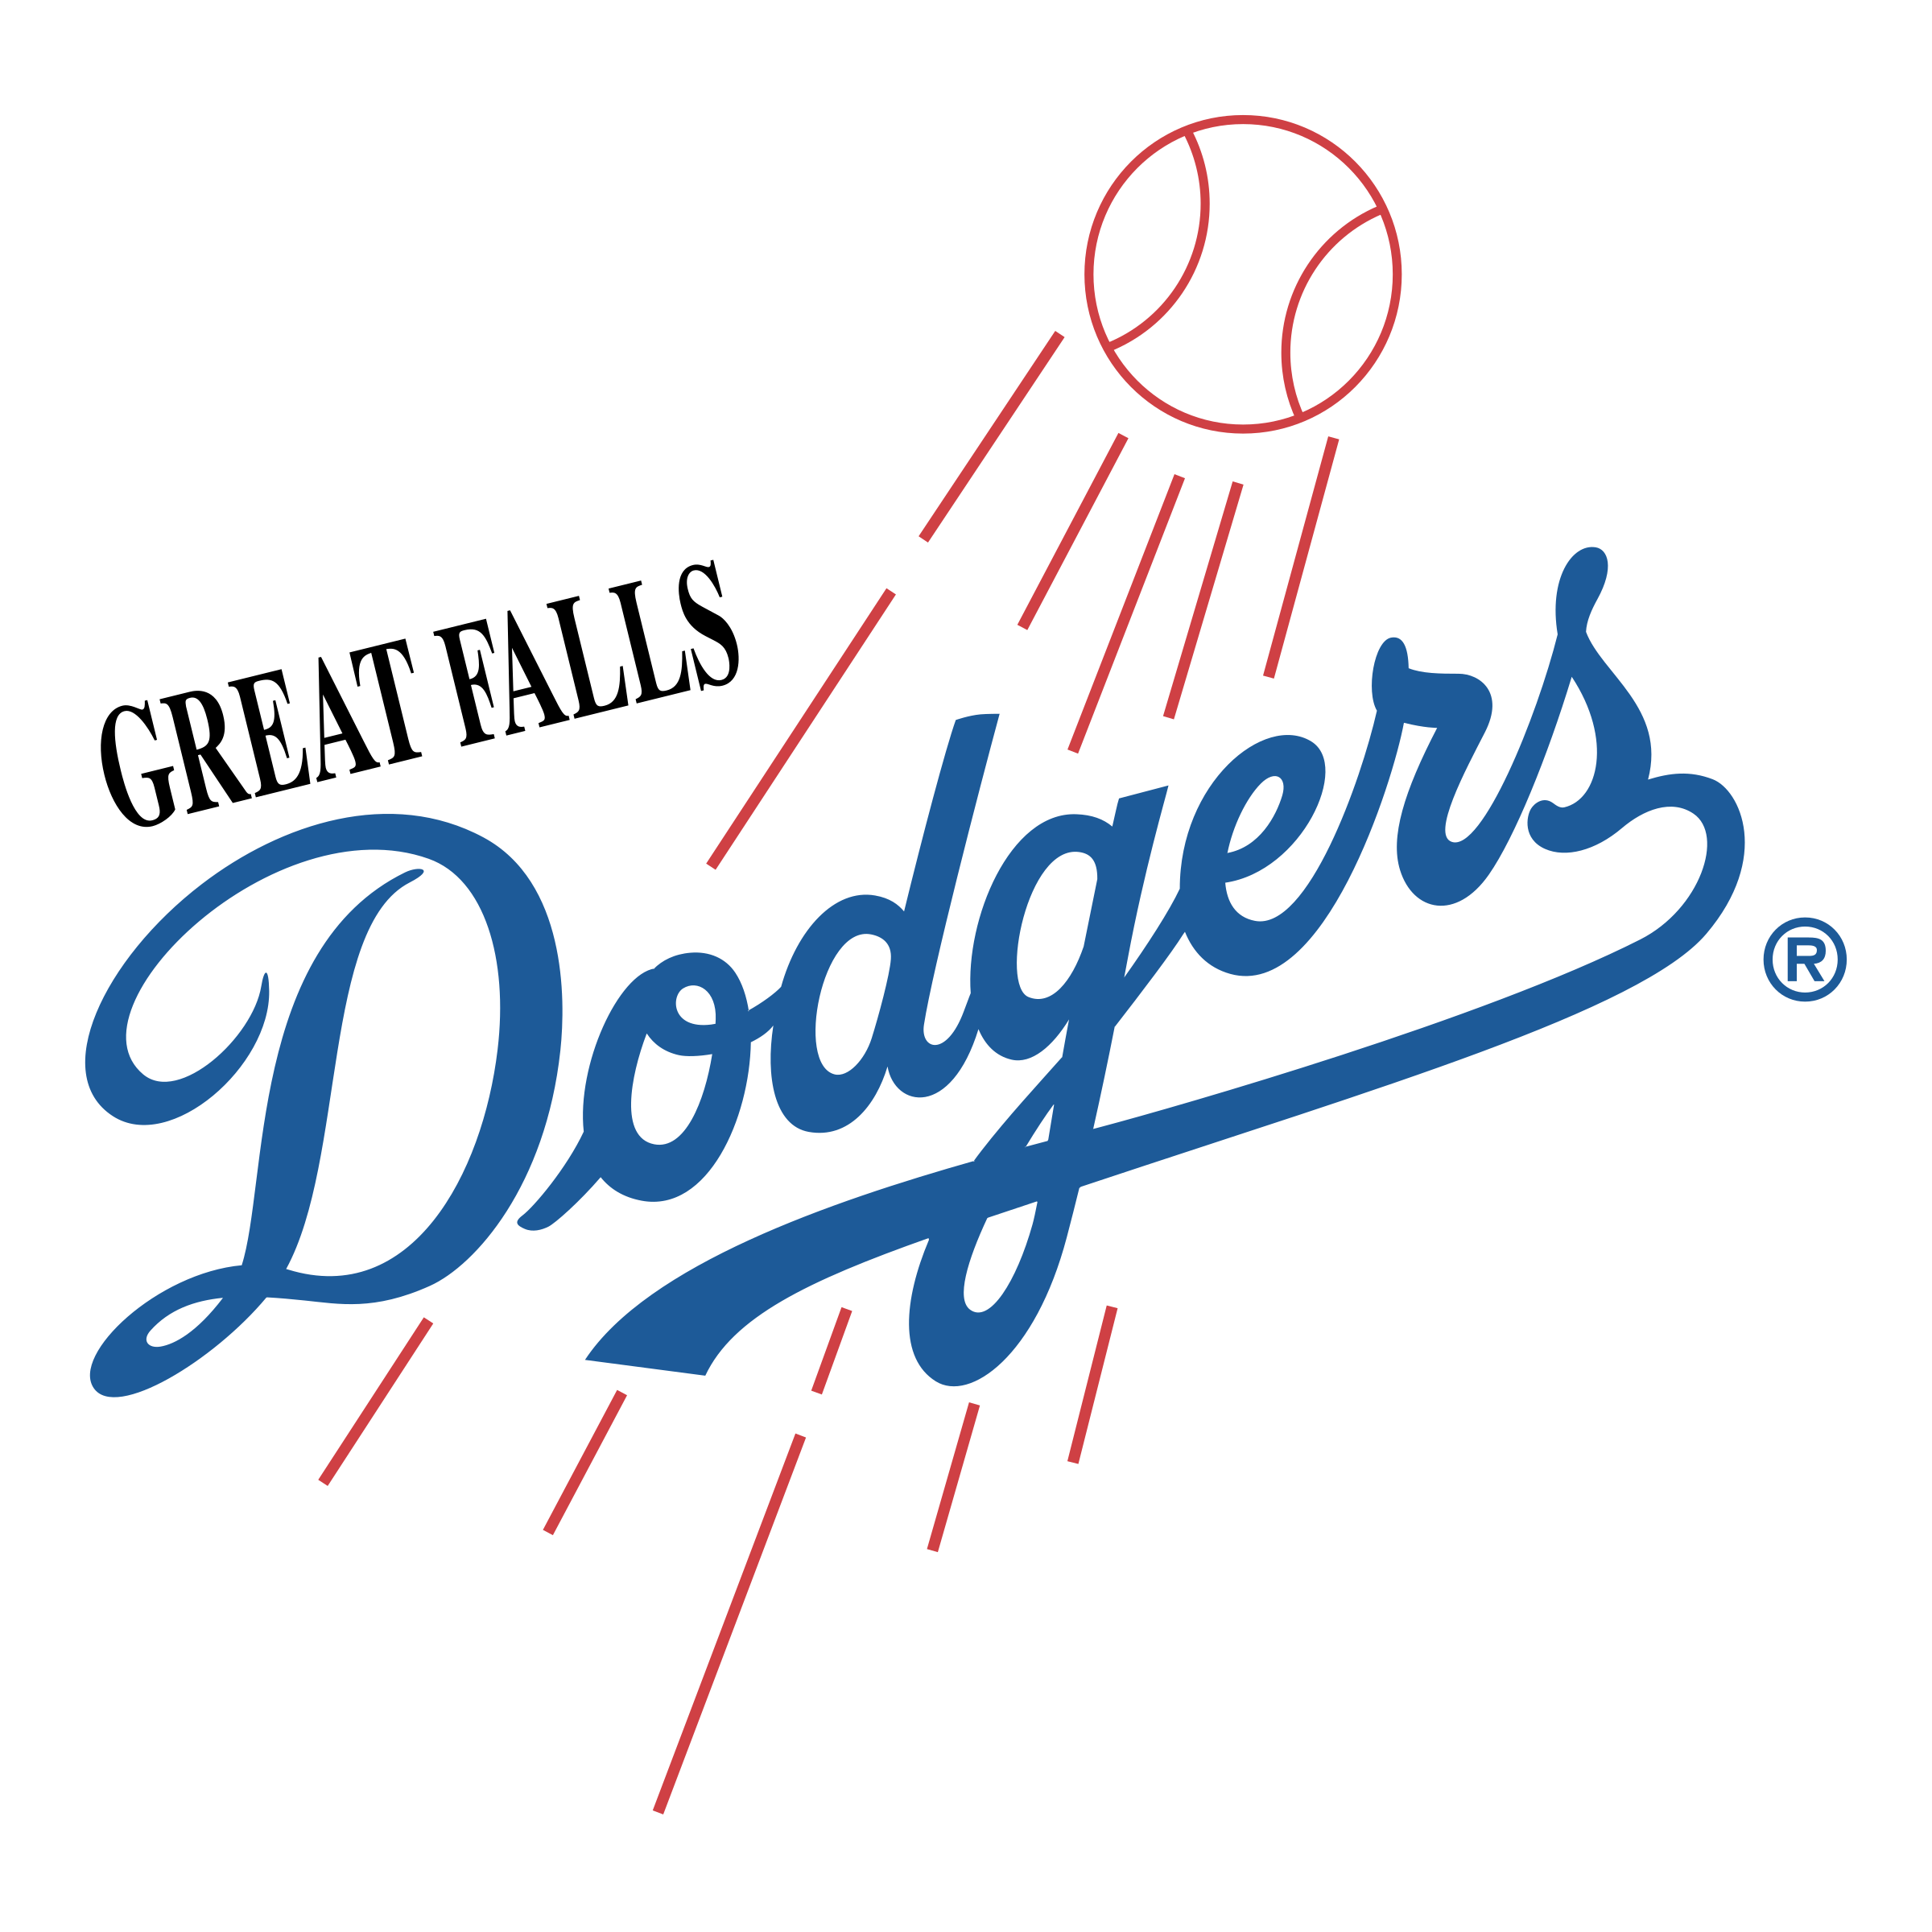 Great falls logo png. Dodgers svg thank you graphic transparent library